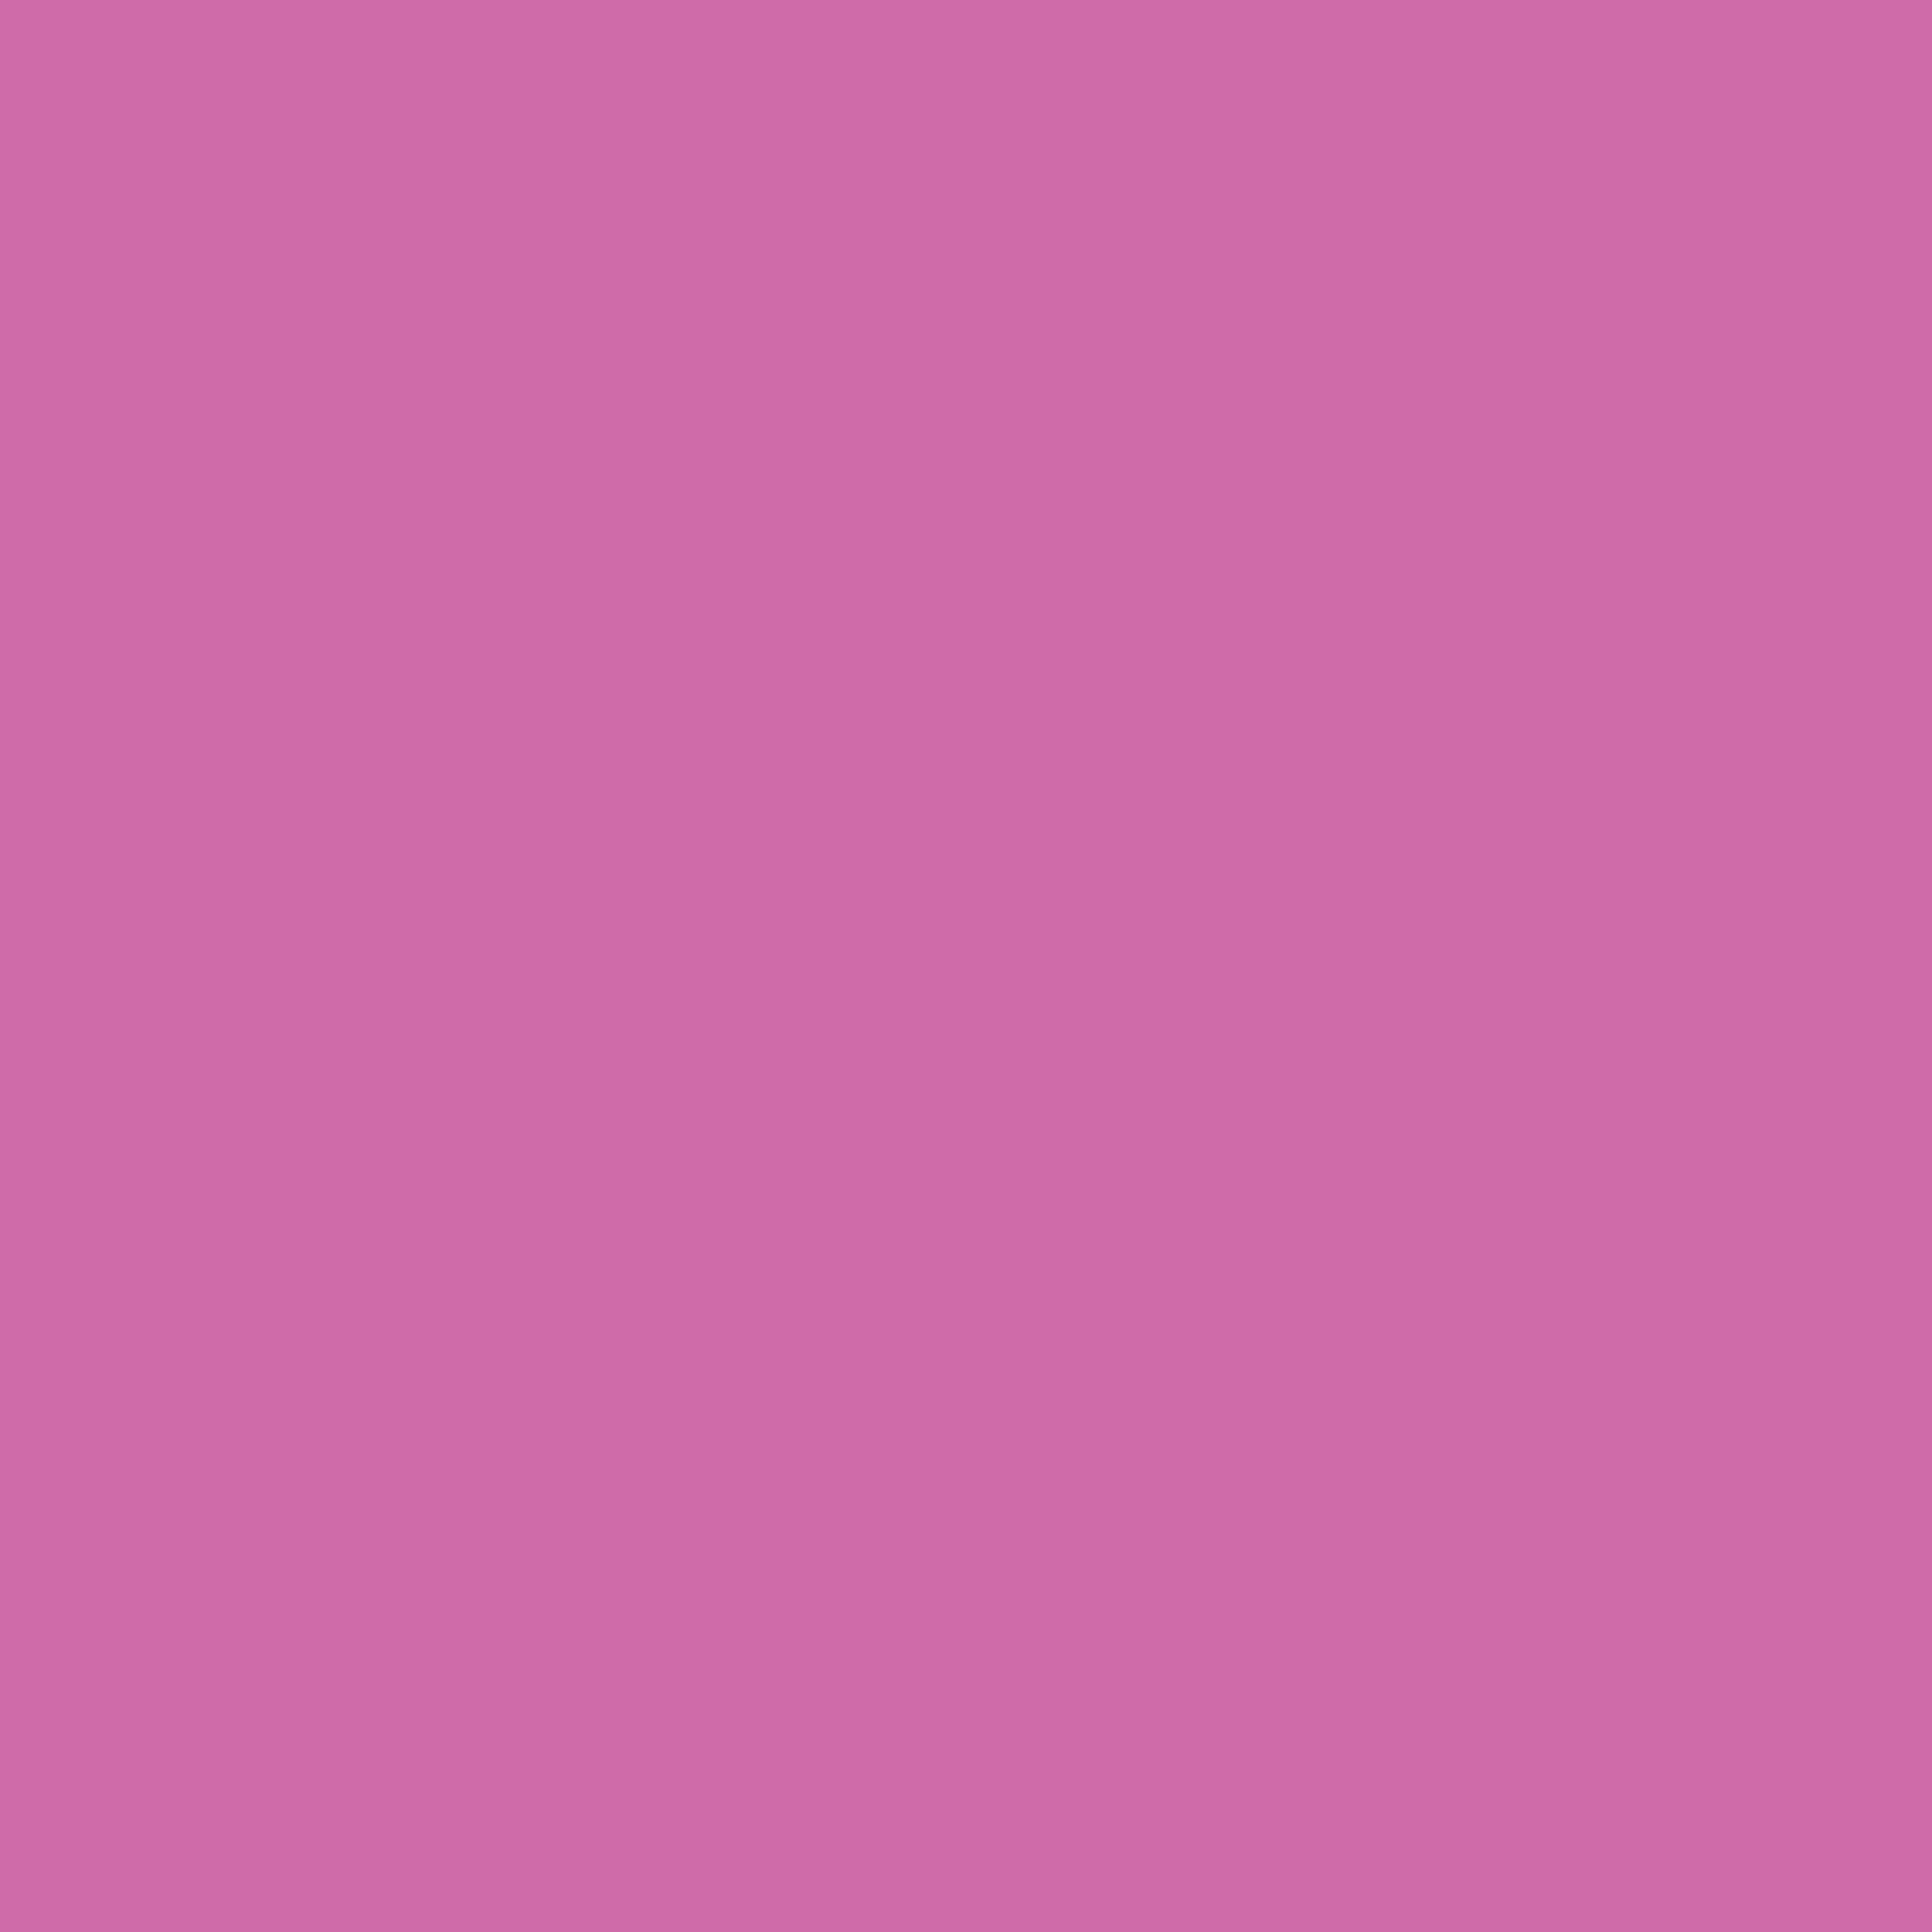 2048x2048 Super Pink Solid Color Background